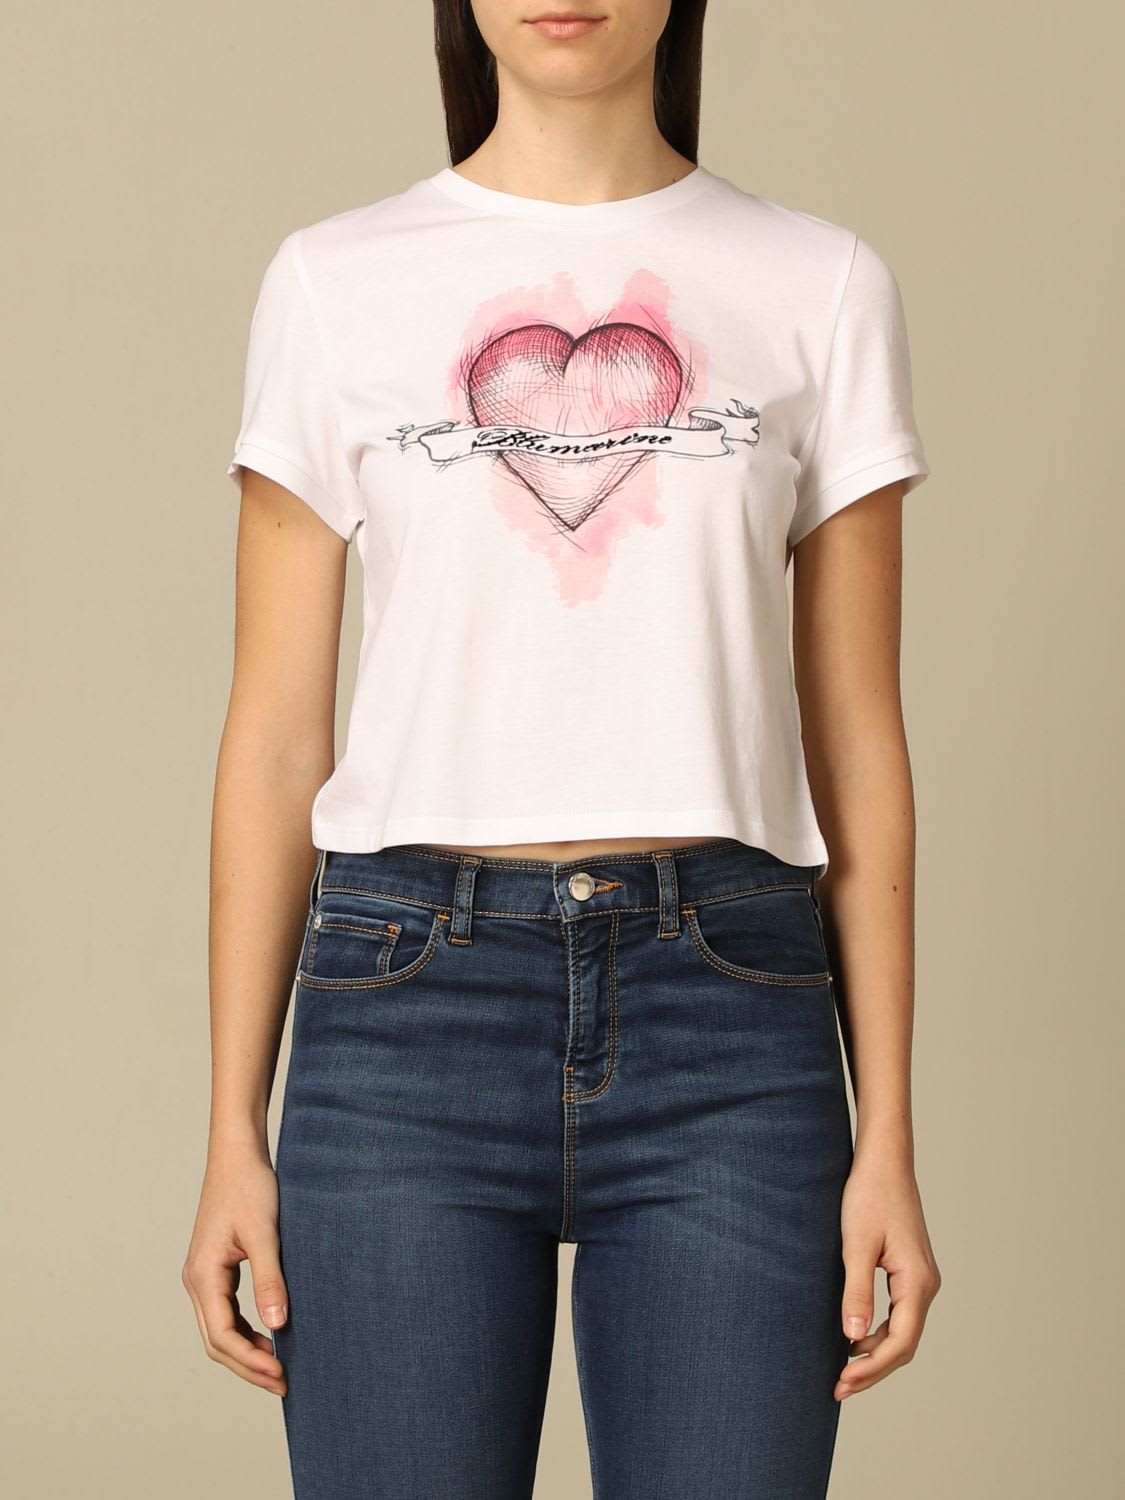 Blumarine T-shirt Blumarine Cotton T-shirt With Heart Print